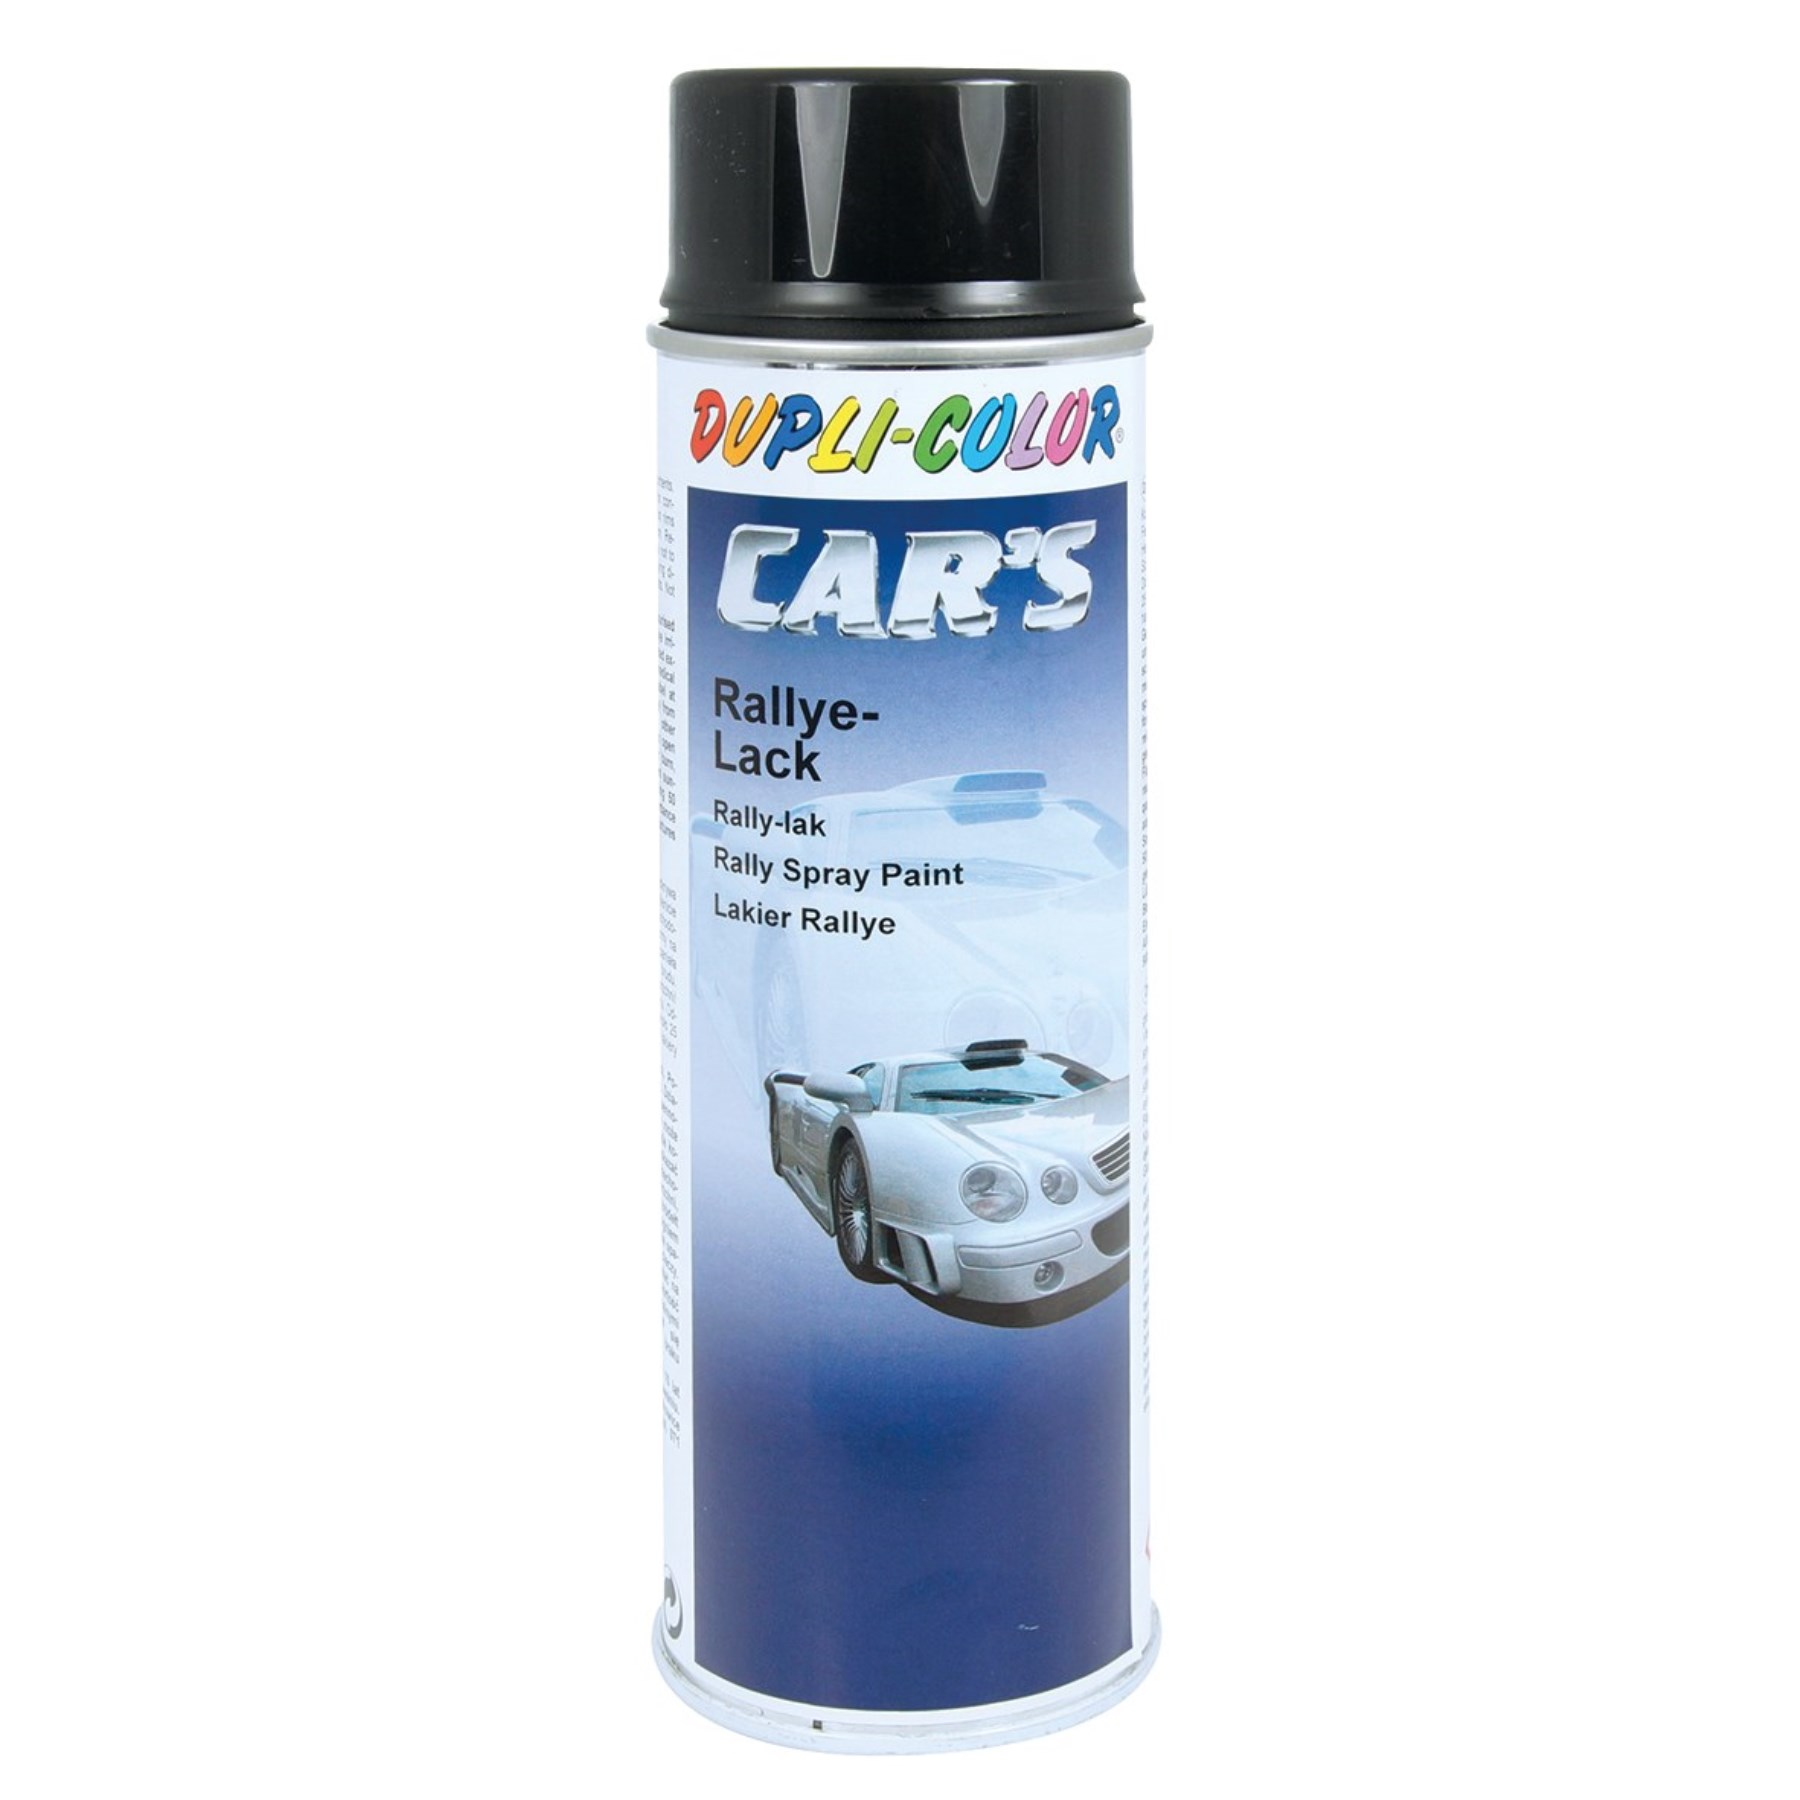 1172274 - Lackspray Klarlack glz.400ml Car`s